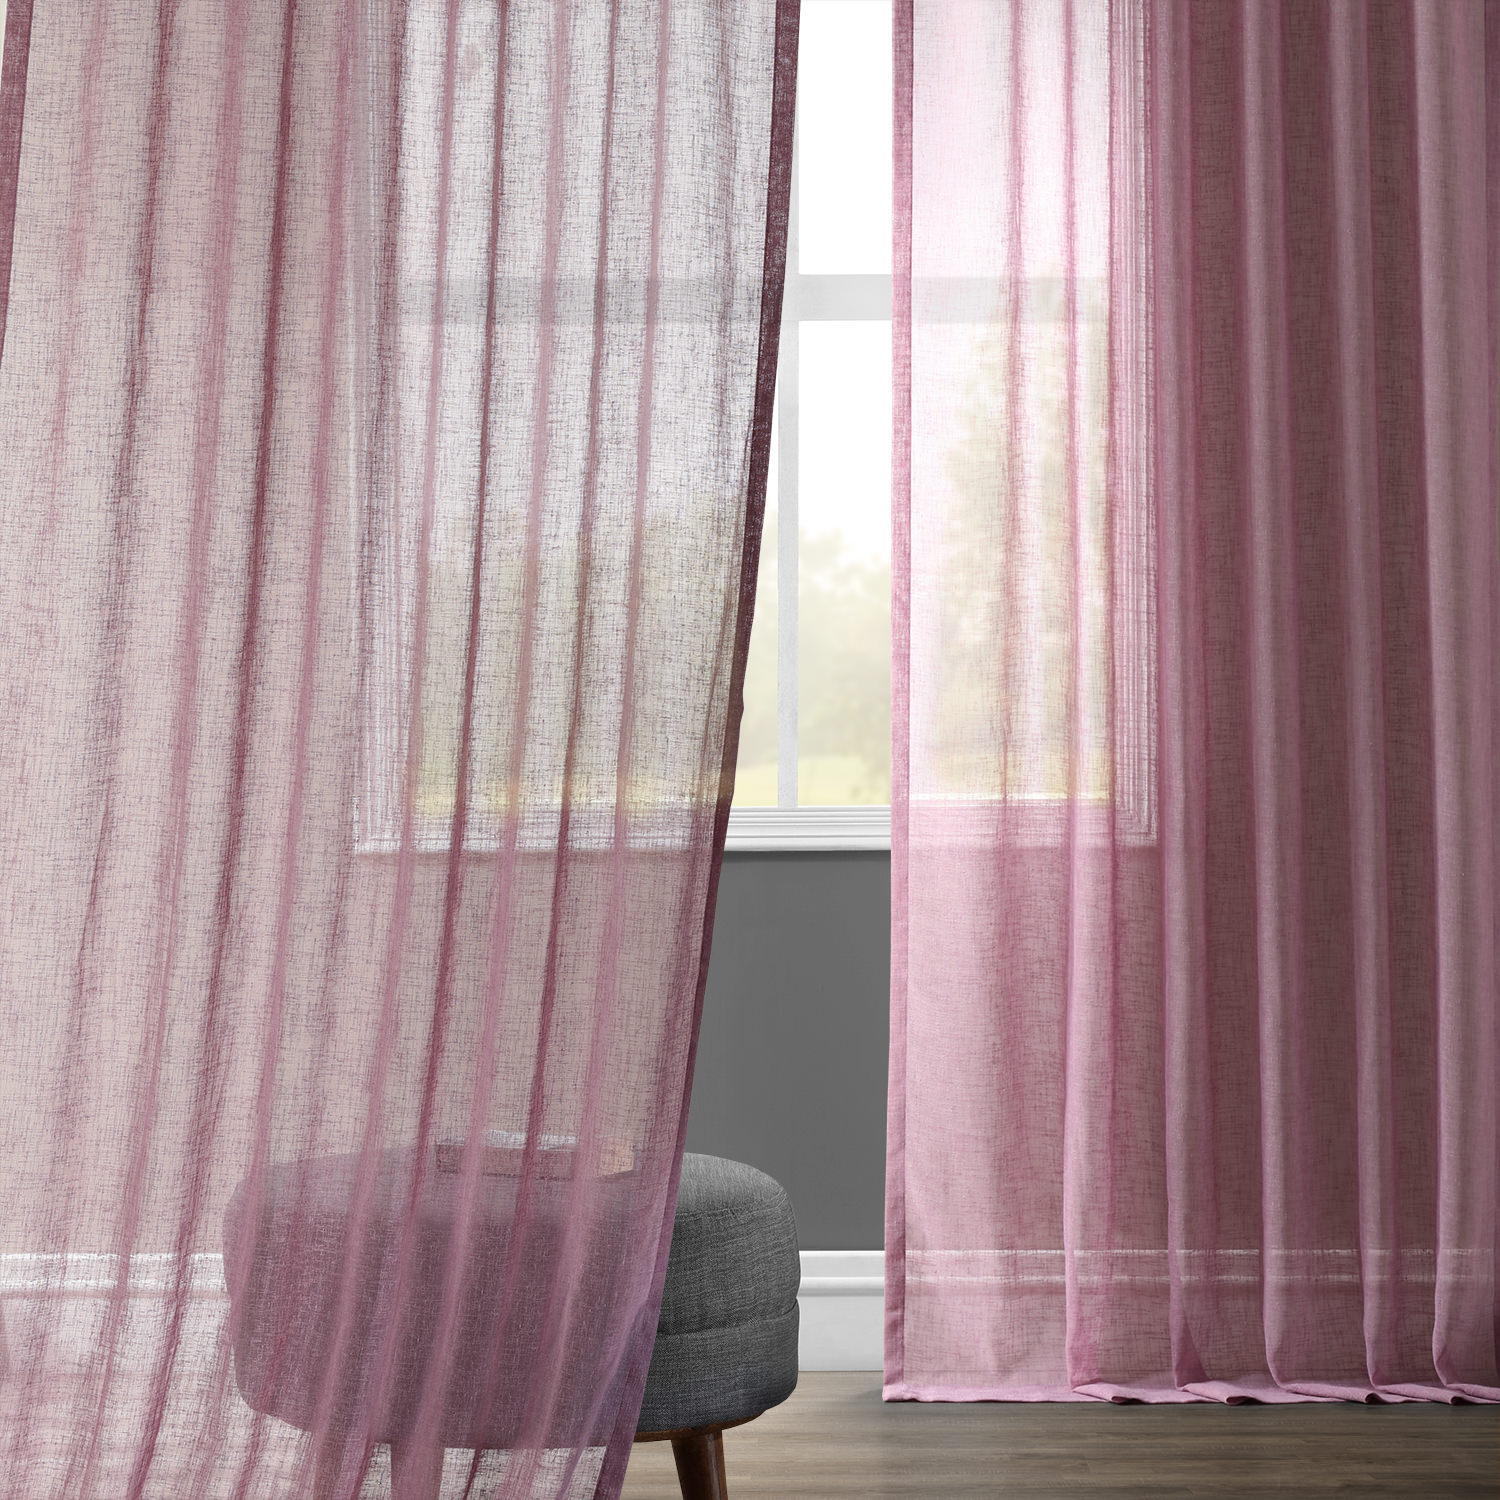 Blackberry Cream Solid Faux Linen Sheer Curtain